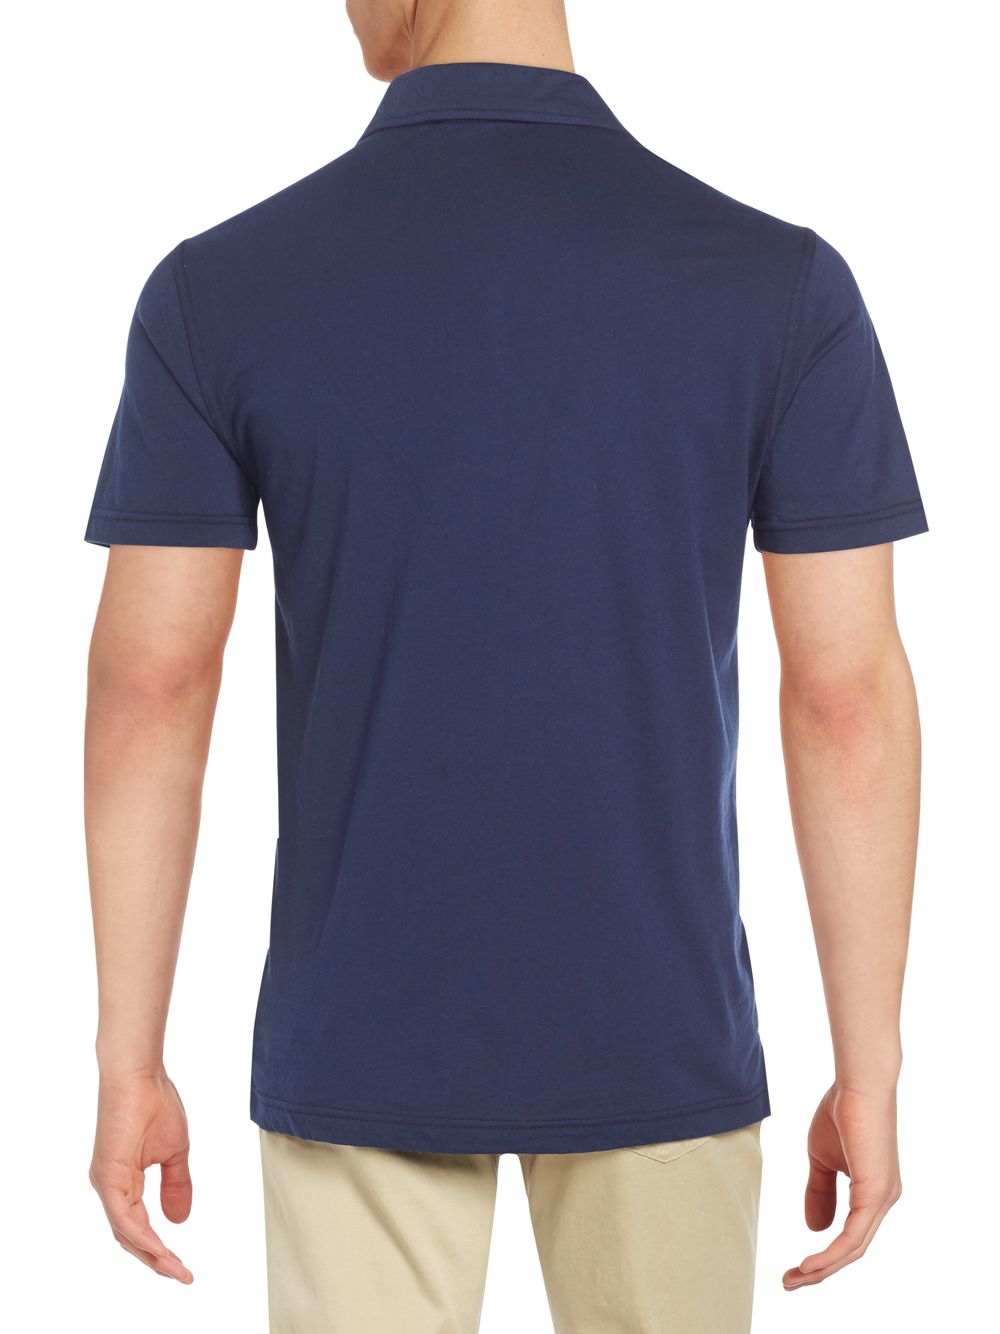 Slate And Stone Clothing : Slate stone oliver jersey polo in blue for men lyst